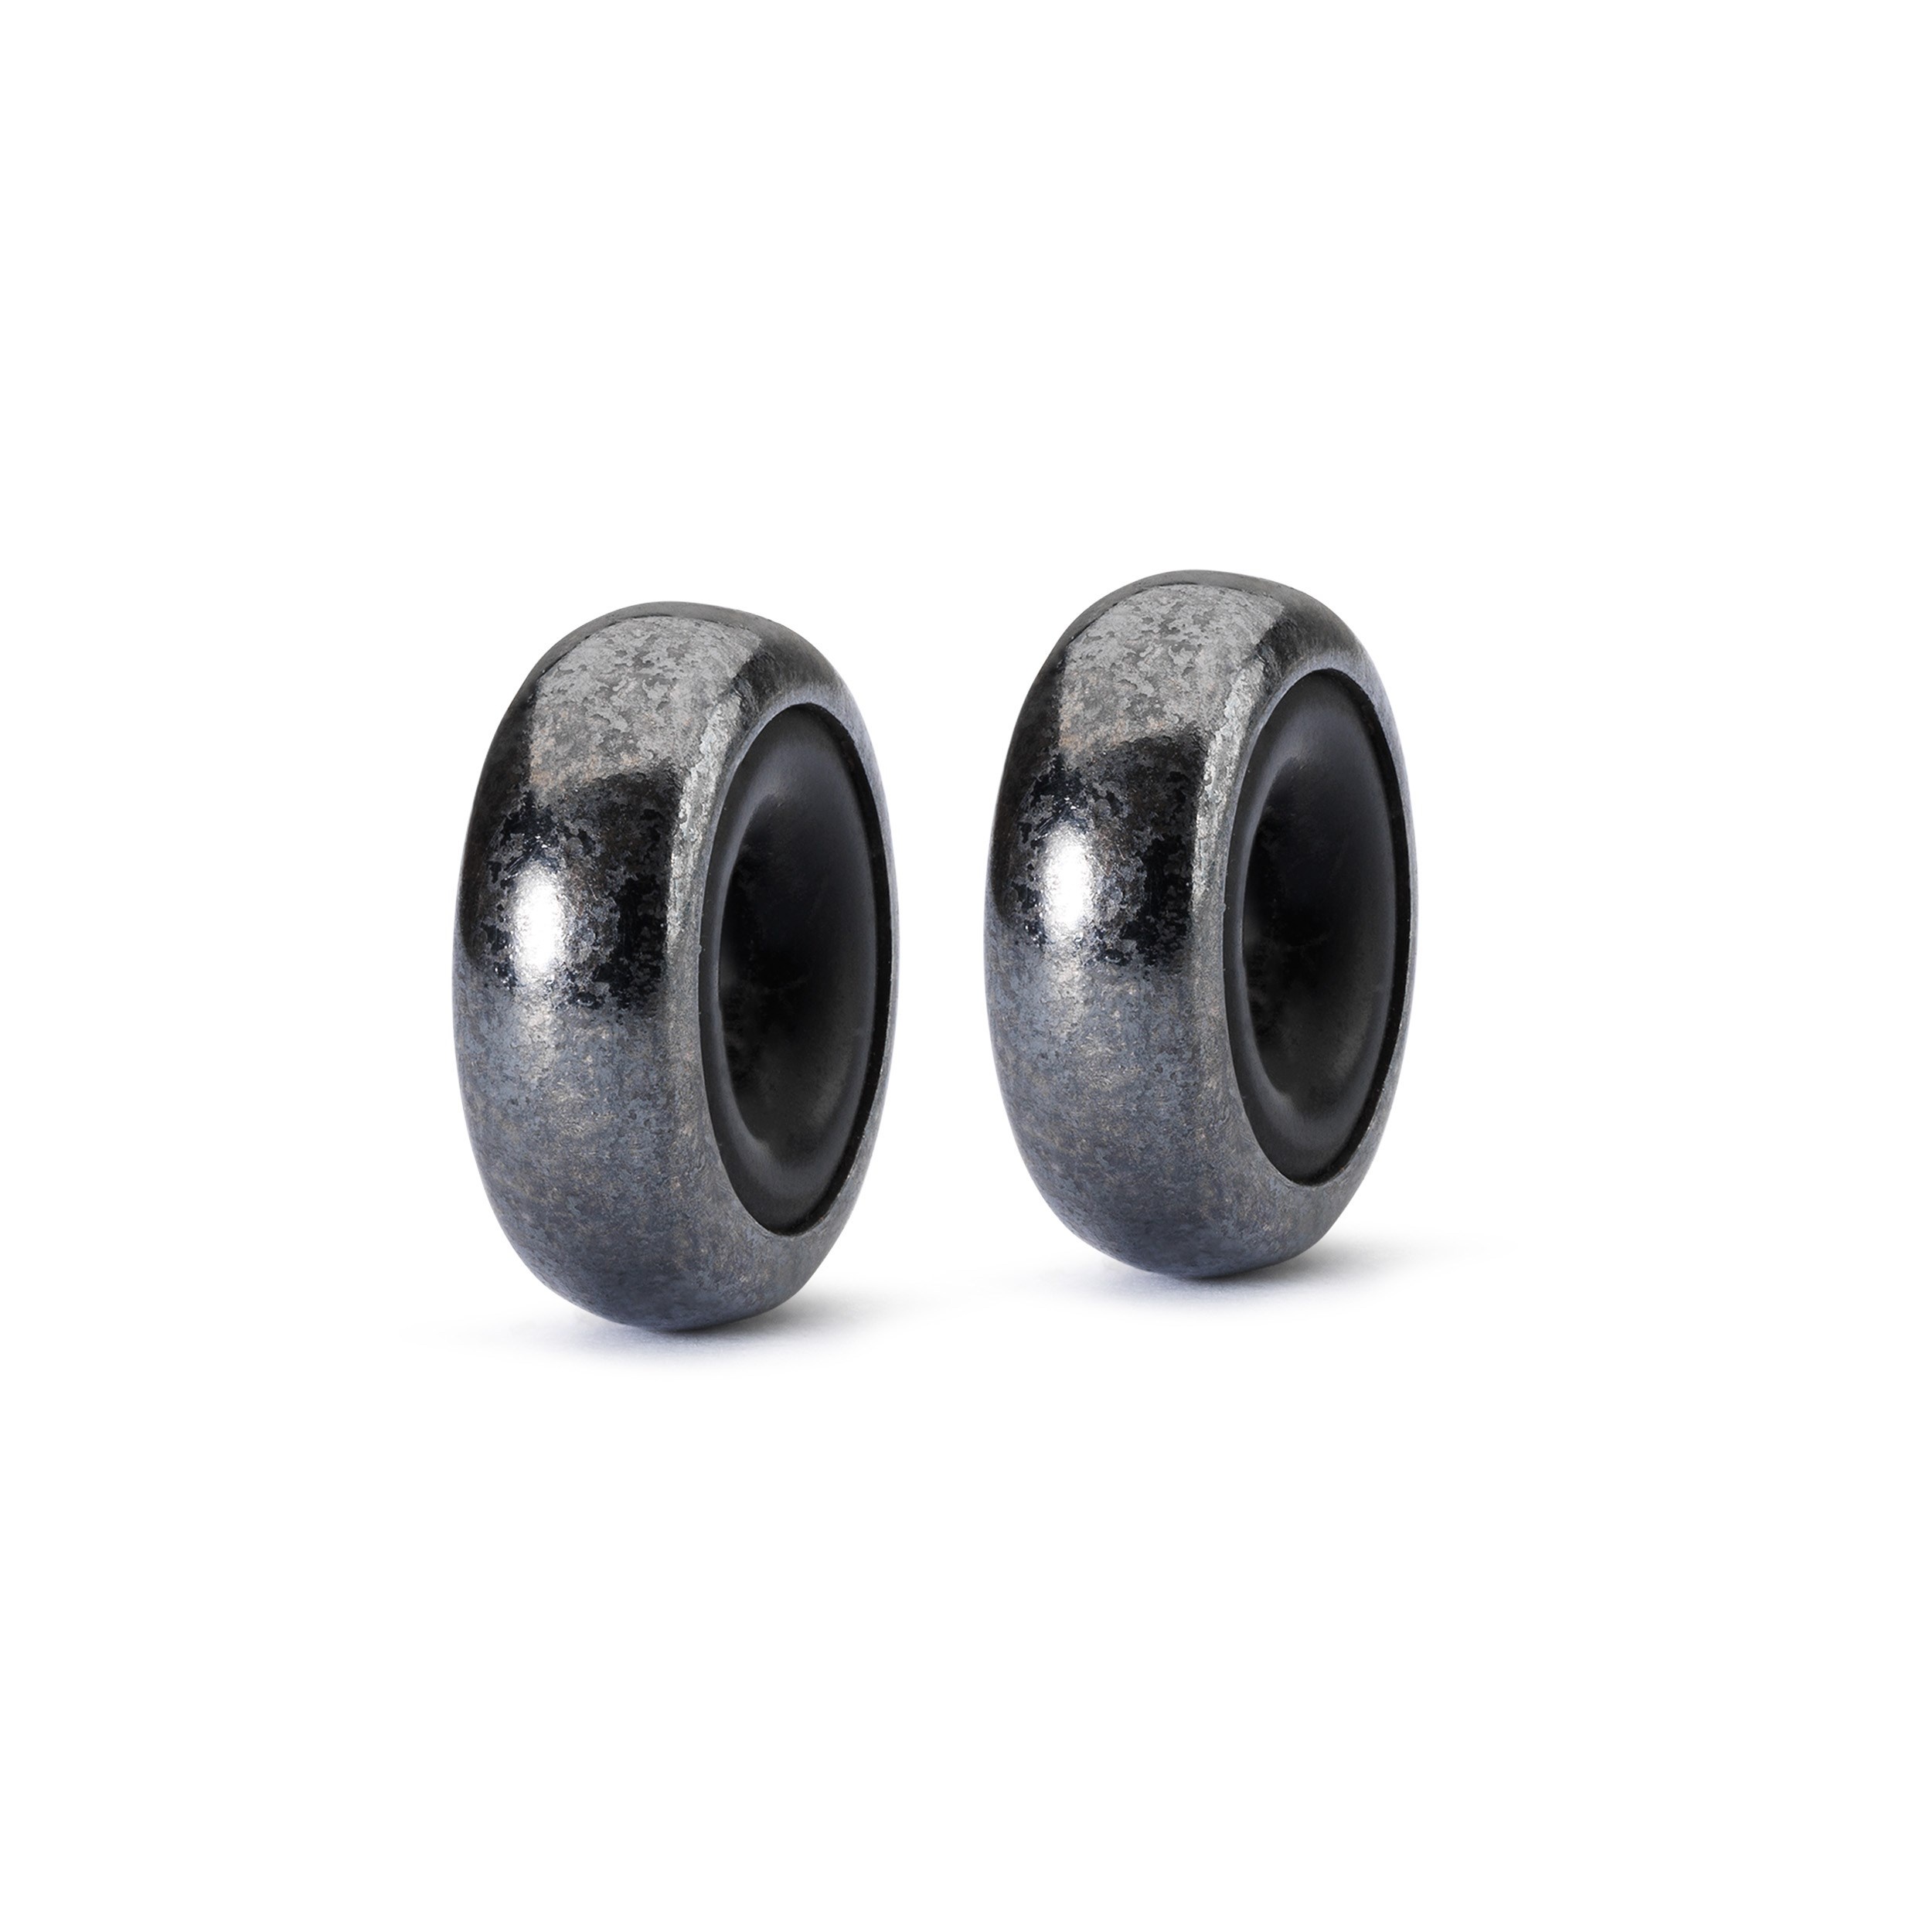 Silver Spacer Oxidized (2 pcs)